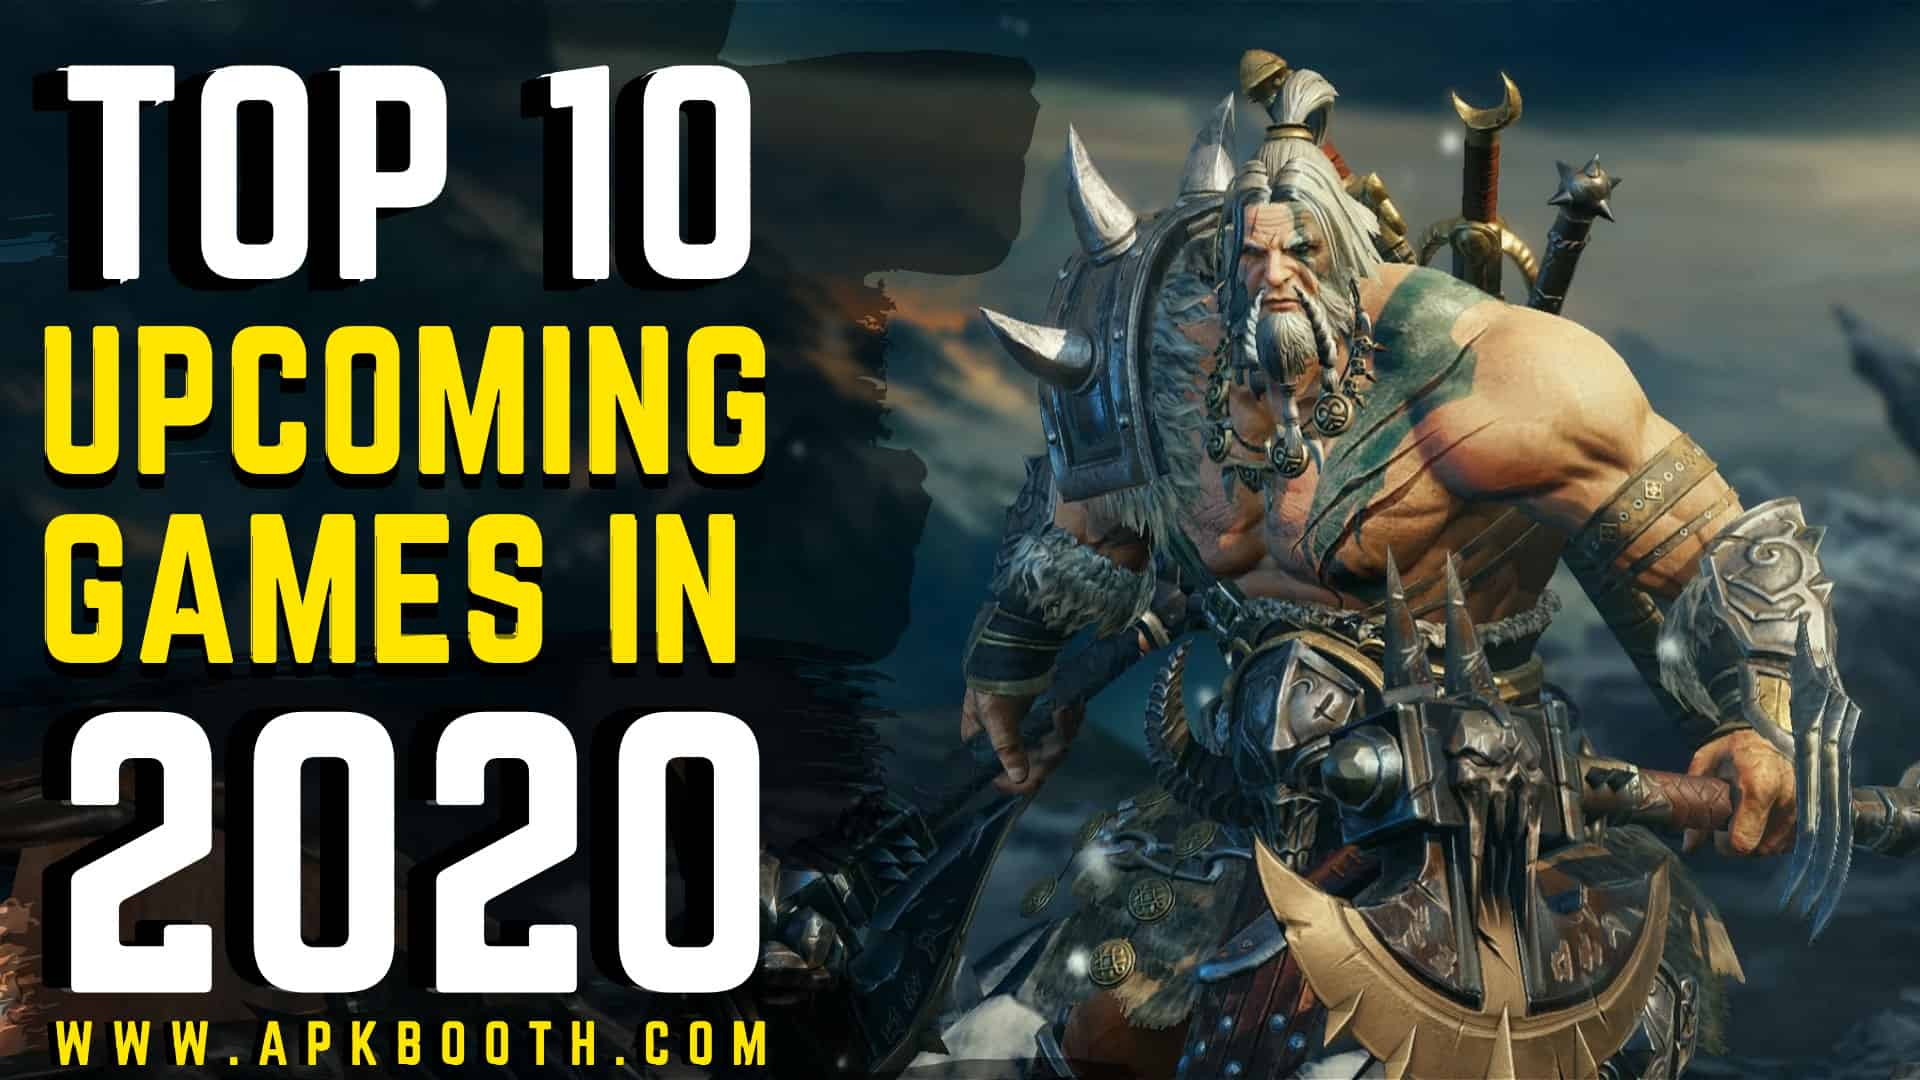 Top 10 Upcoming Mobile Games for Android and iOS User [2021] 1